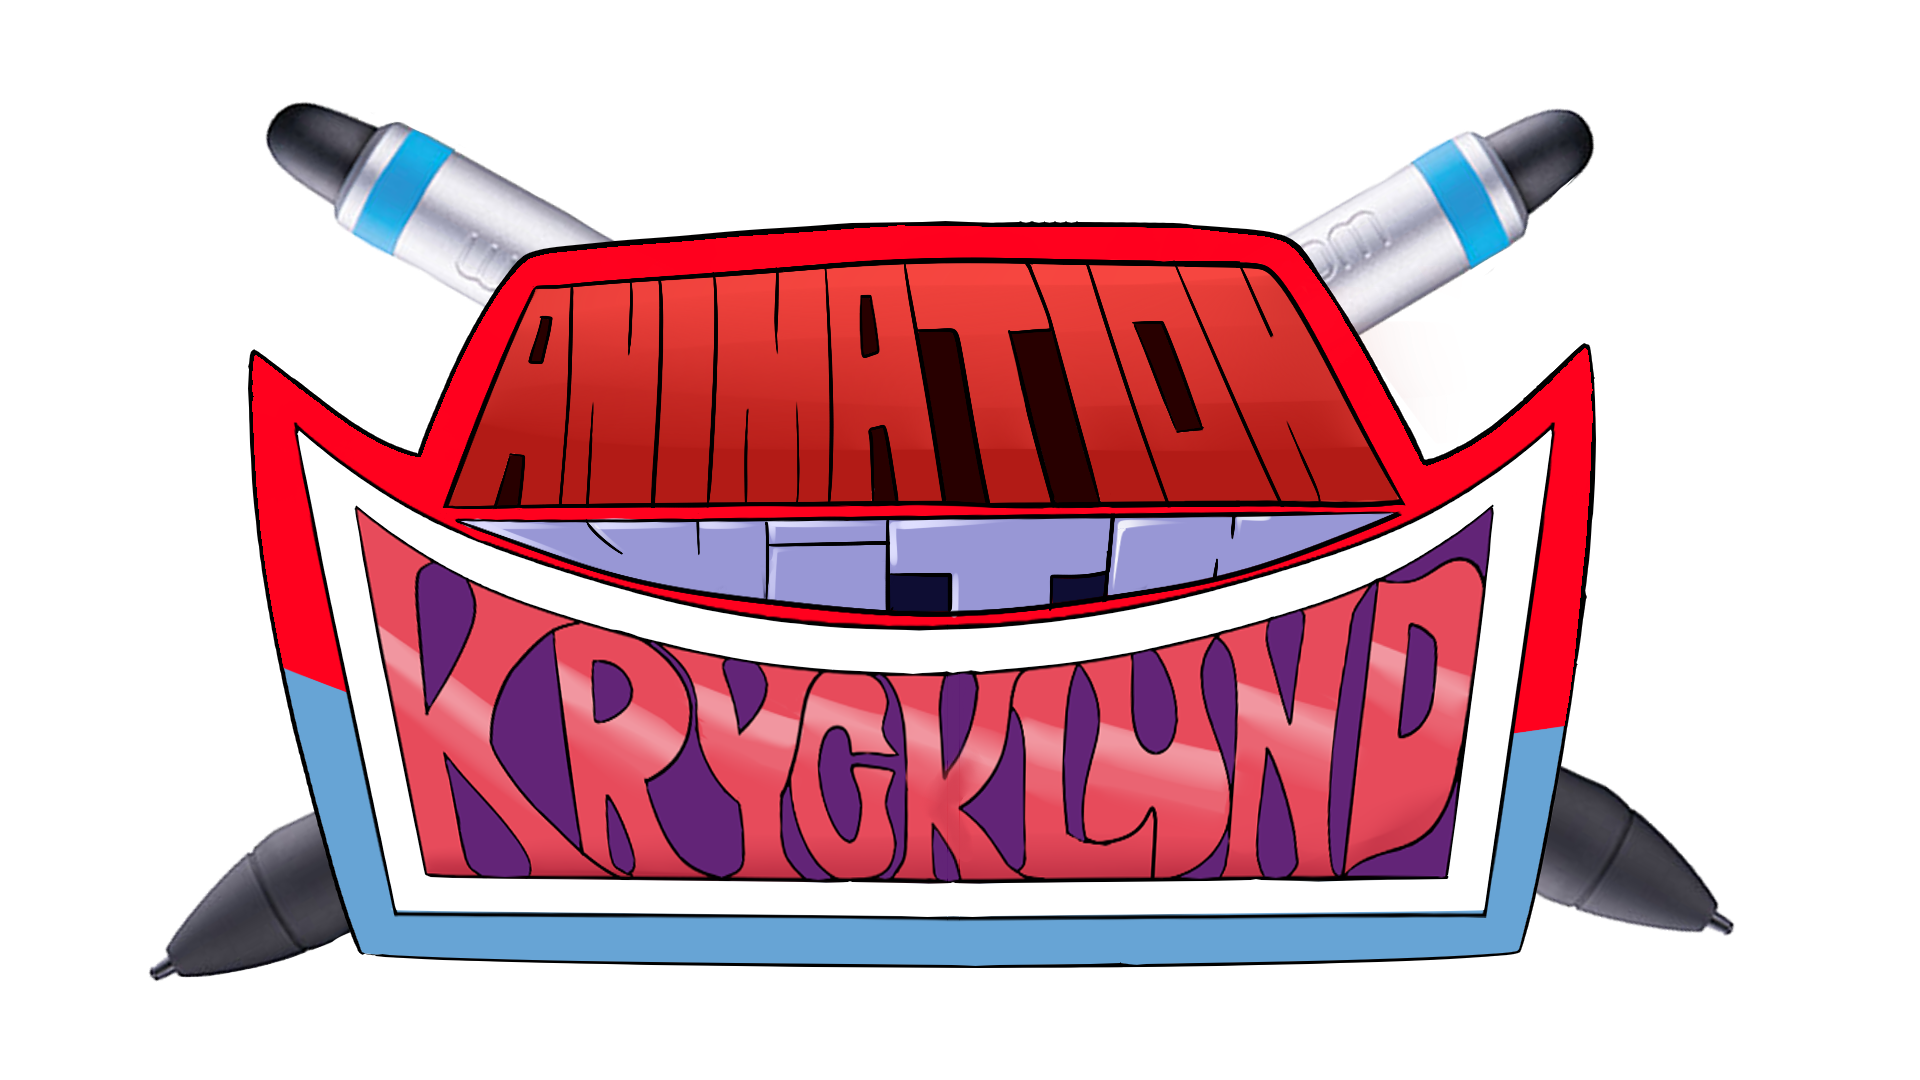 Animation With Krycklund Logo